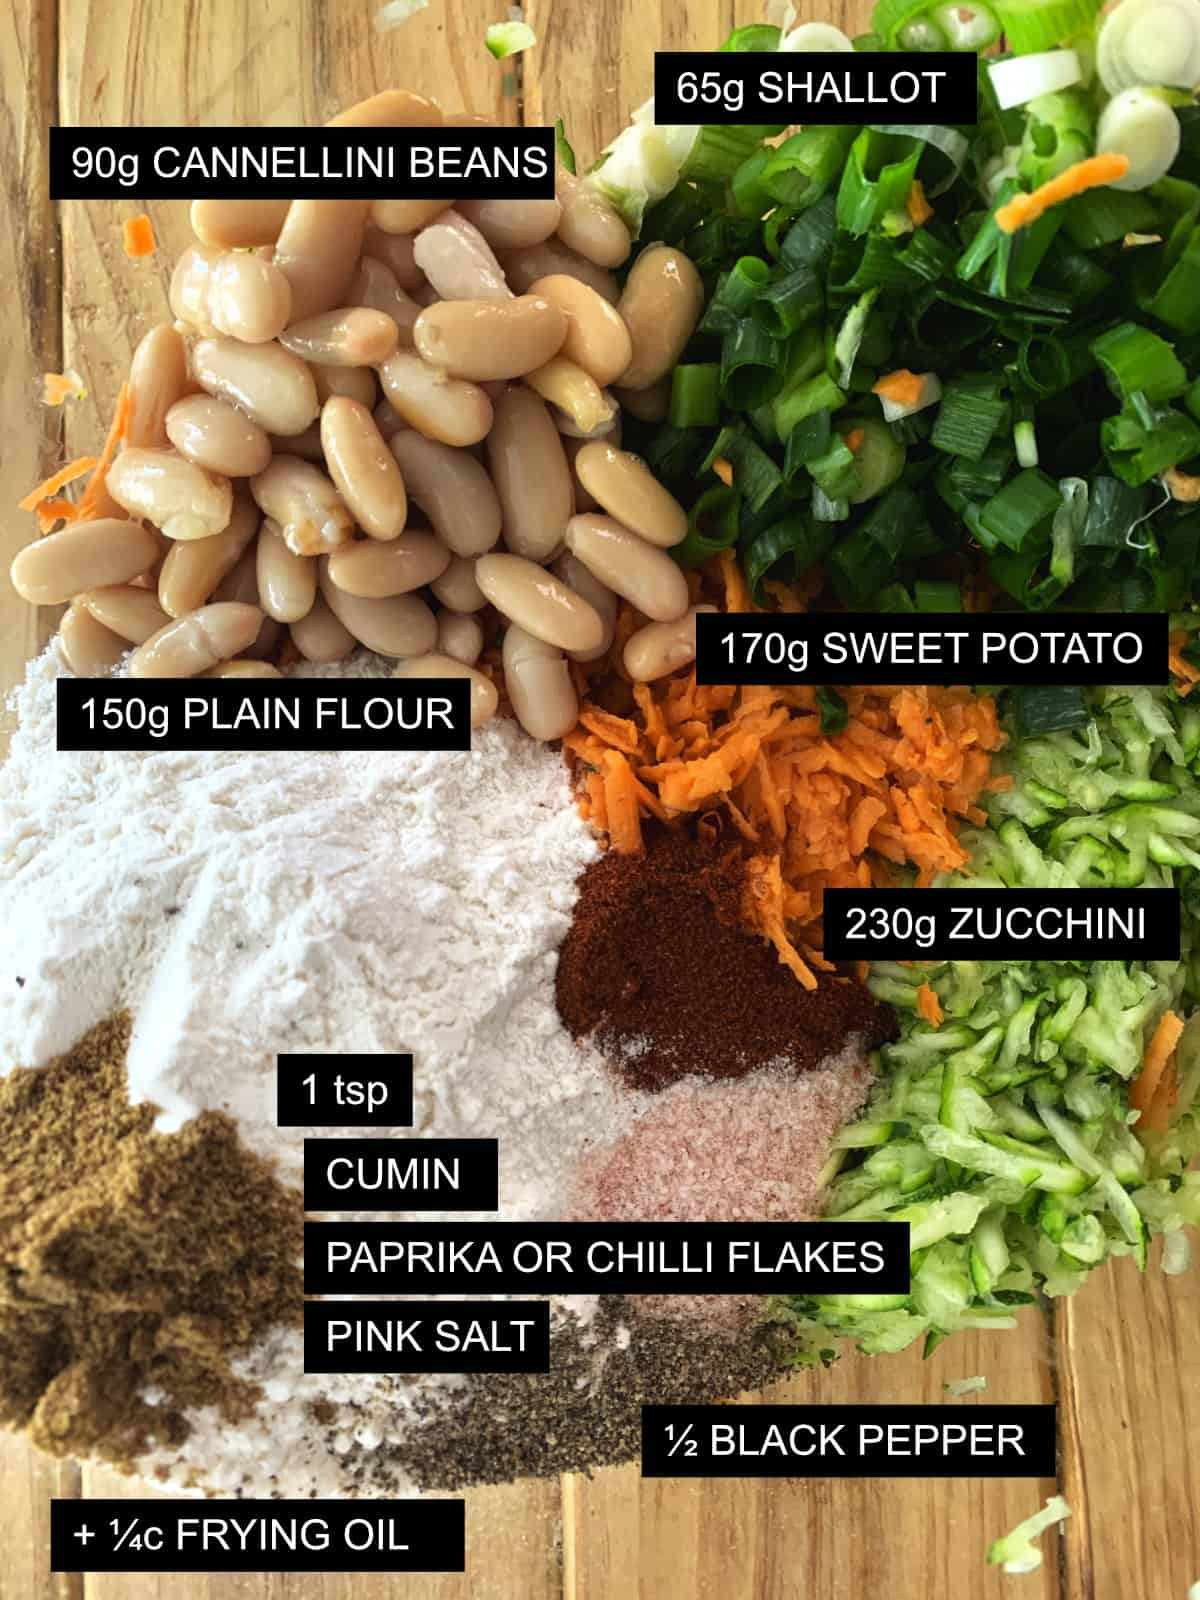 Sweet potato and zucchini fritters ingredients